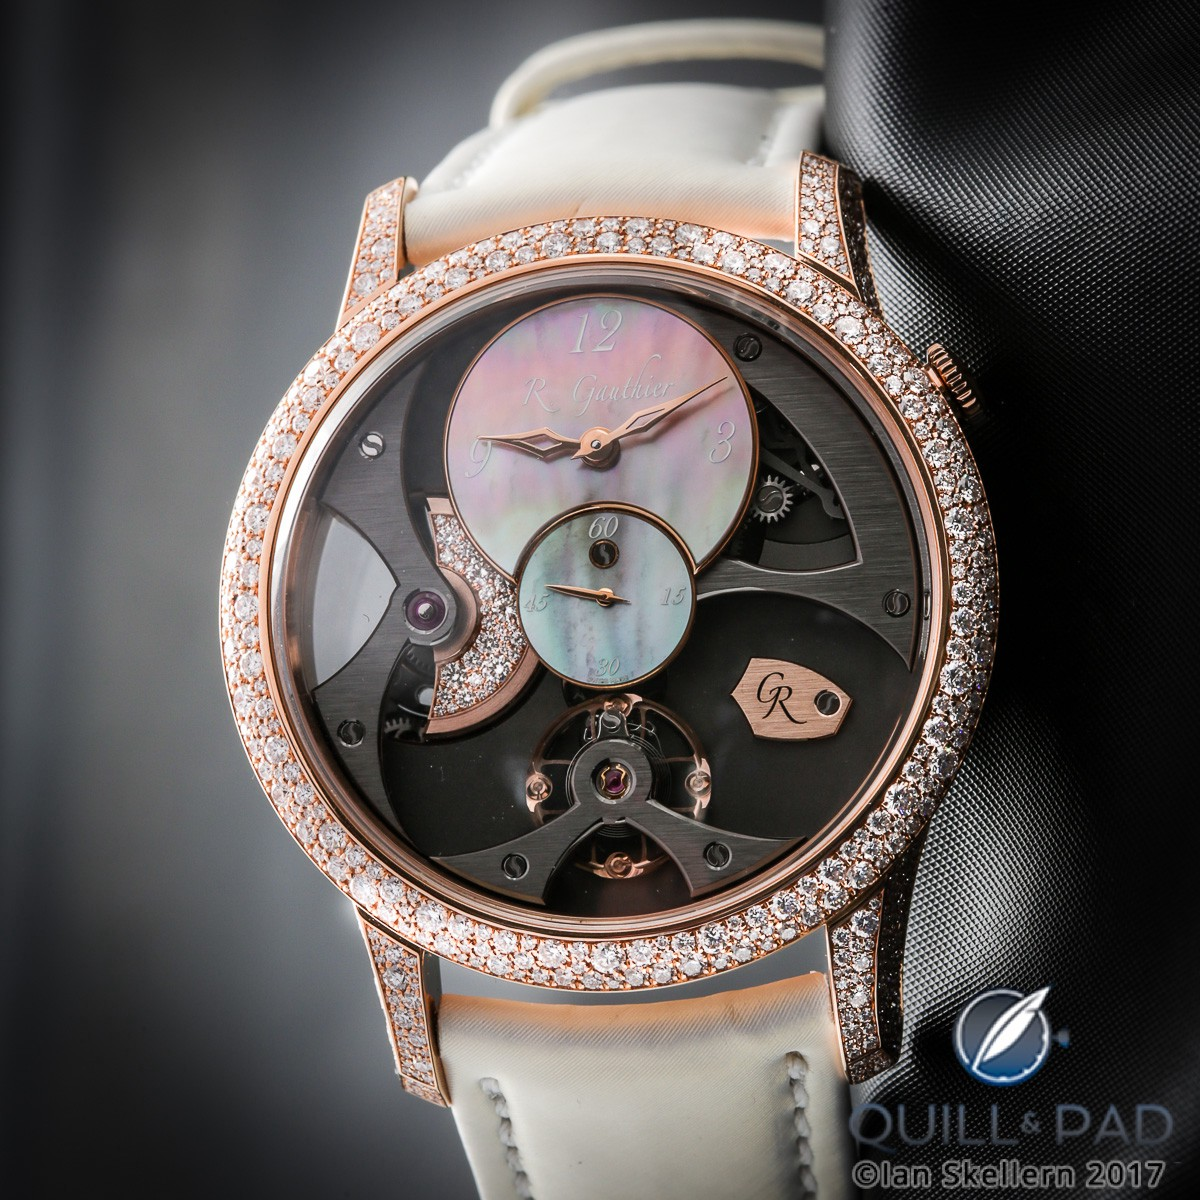 Romain Gauthier Insight Micro-Rotor with diamond-set bezel and rotor plus mother-of-pearl dial